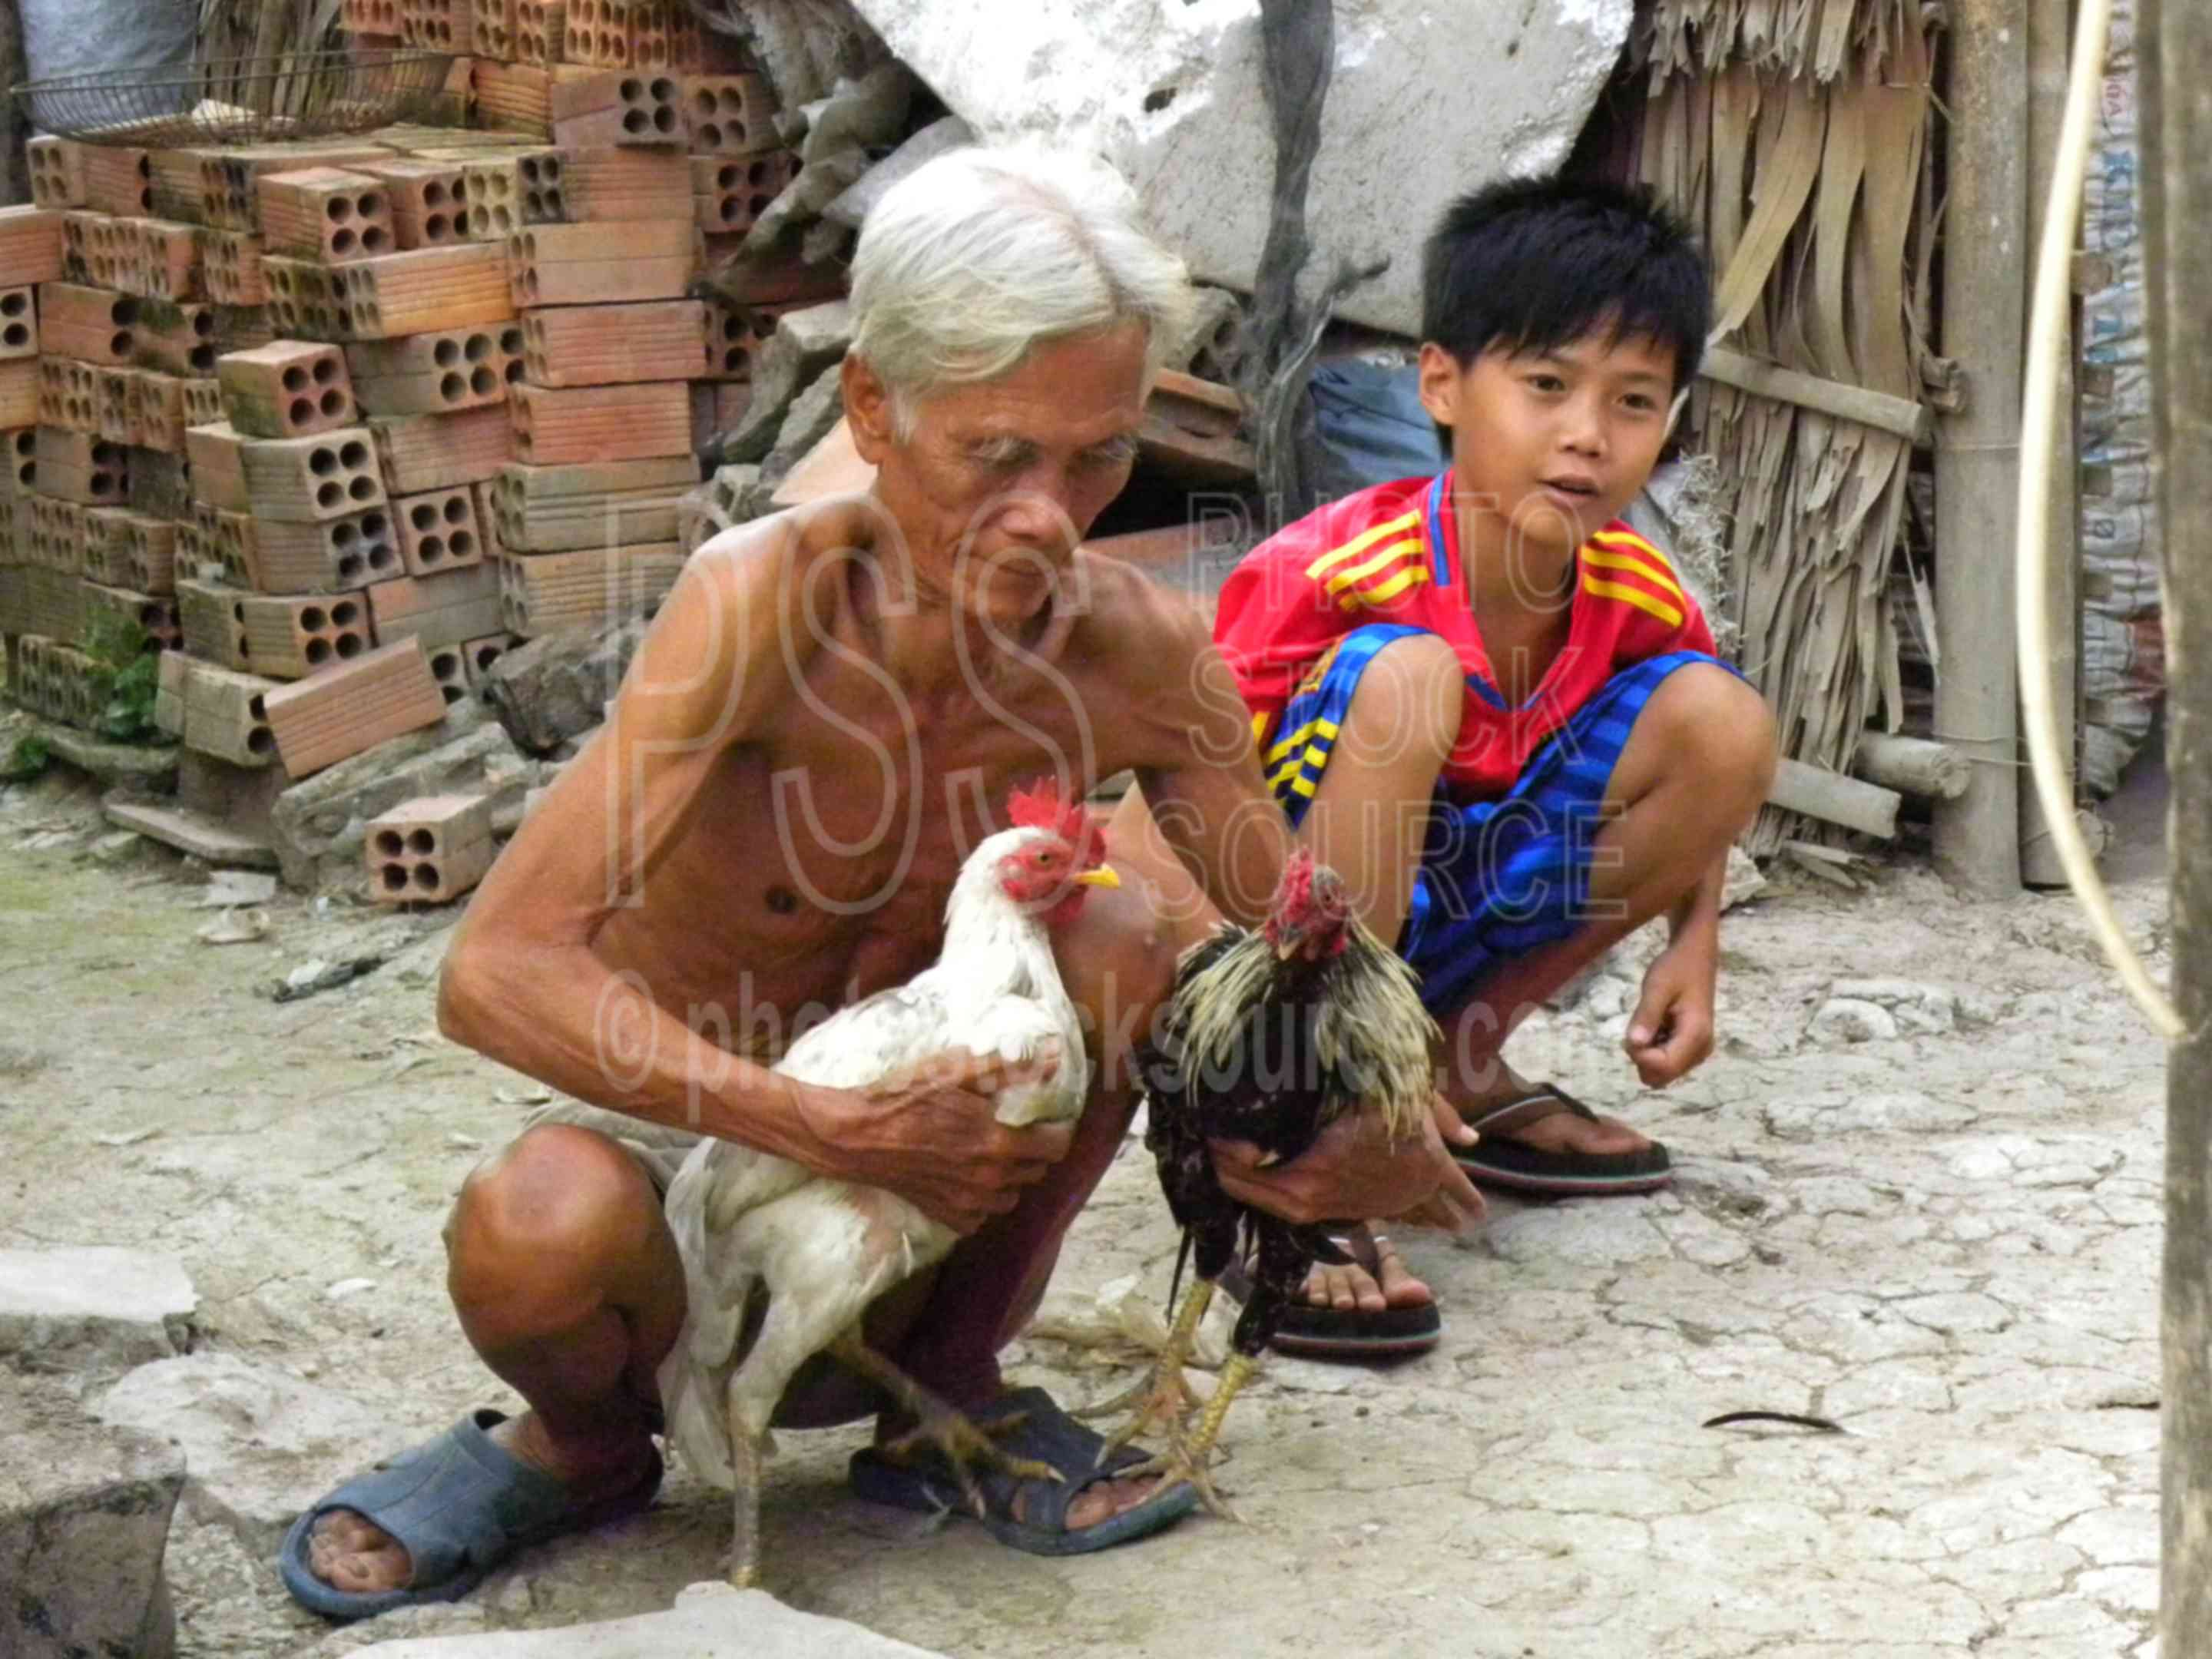 Photo of Cock Fighting by Photo Stock Source people, Thoi ... - photo#22